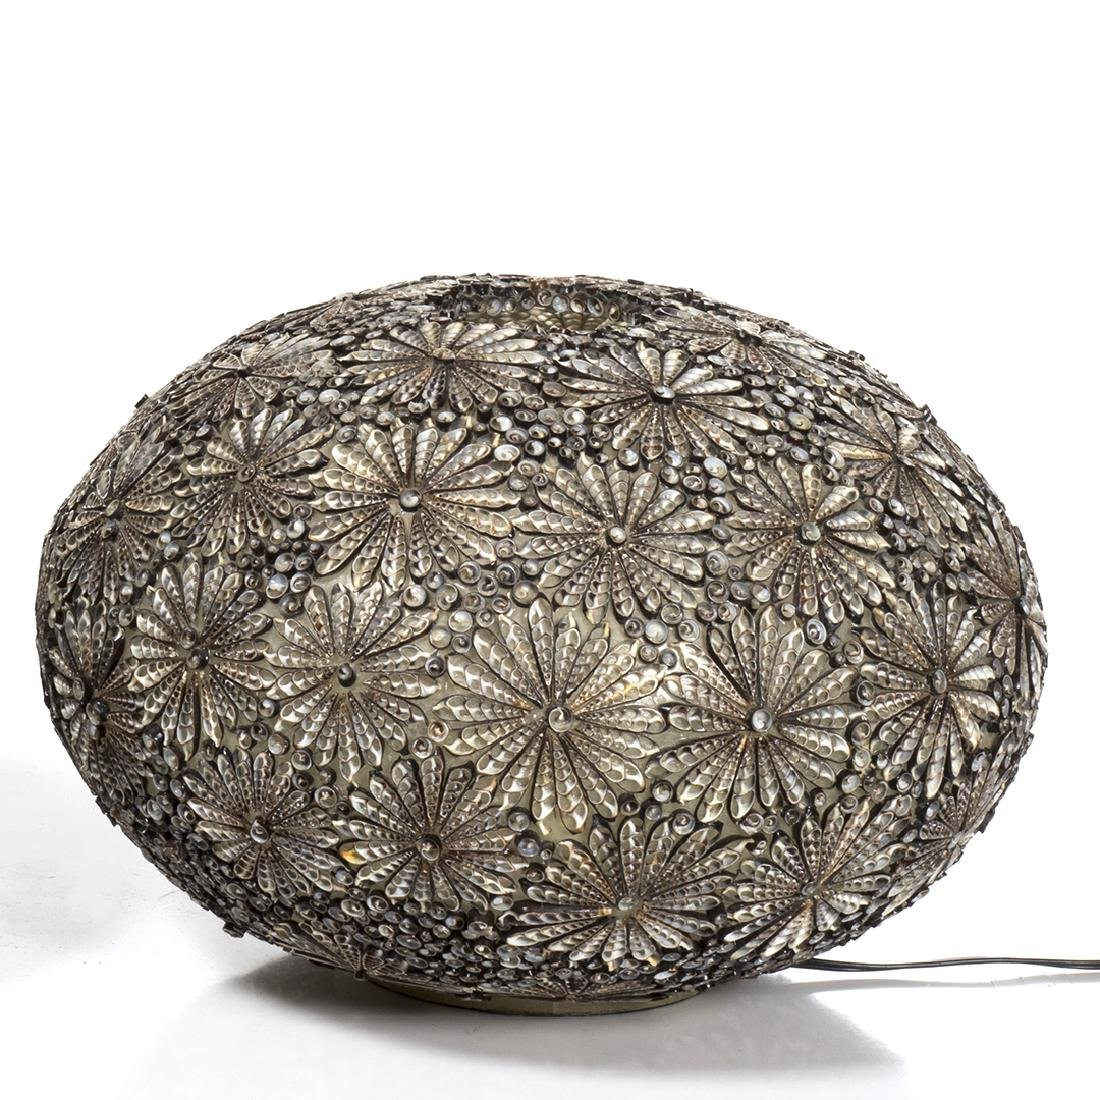 Shell Table Lamps (2) - 2